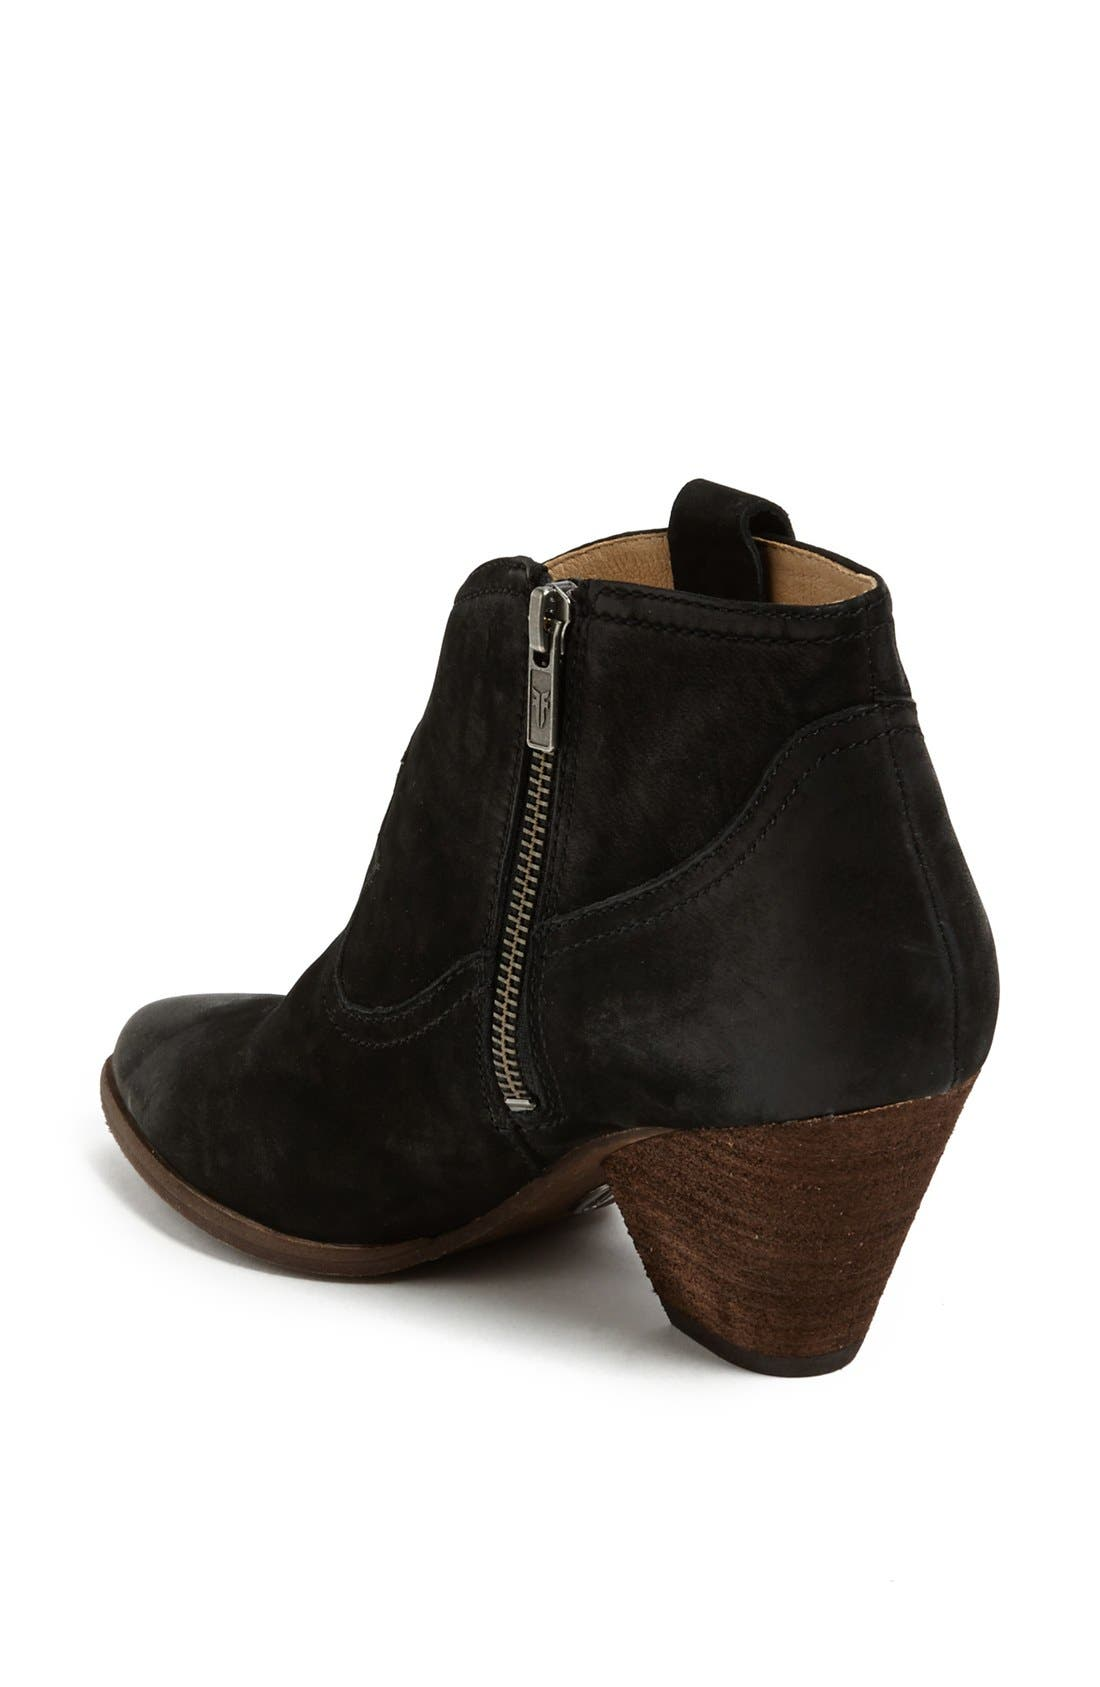 'Reina' Bootie,                             Alternate thumbnail 3, color,                             001